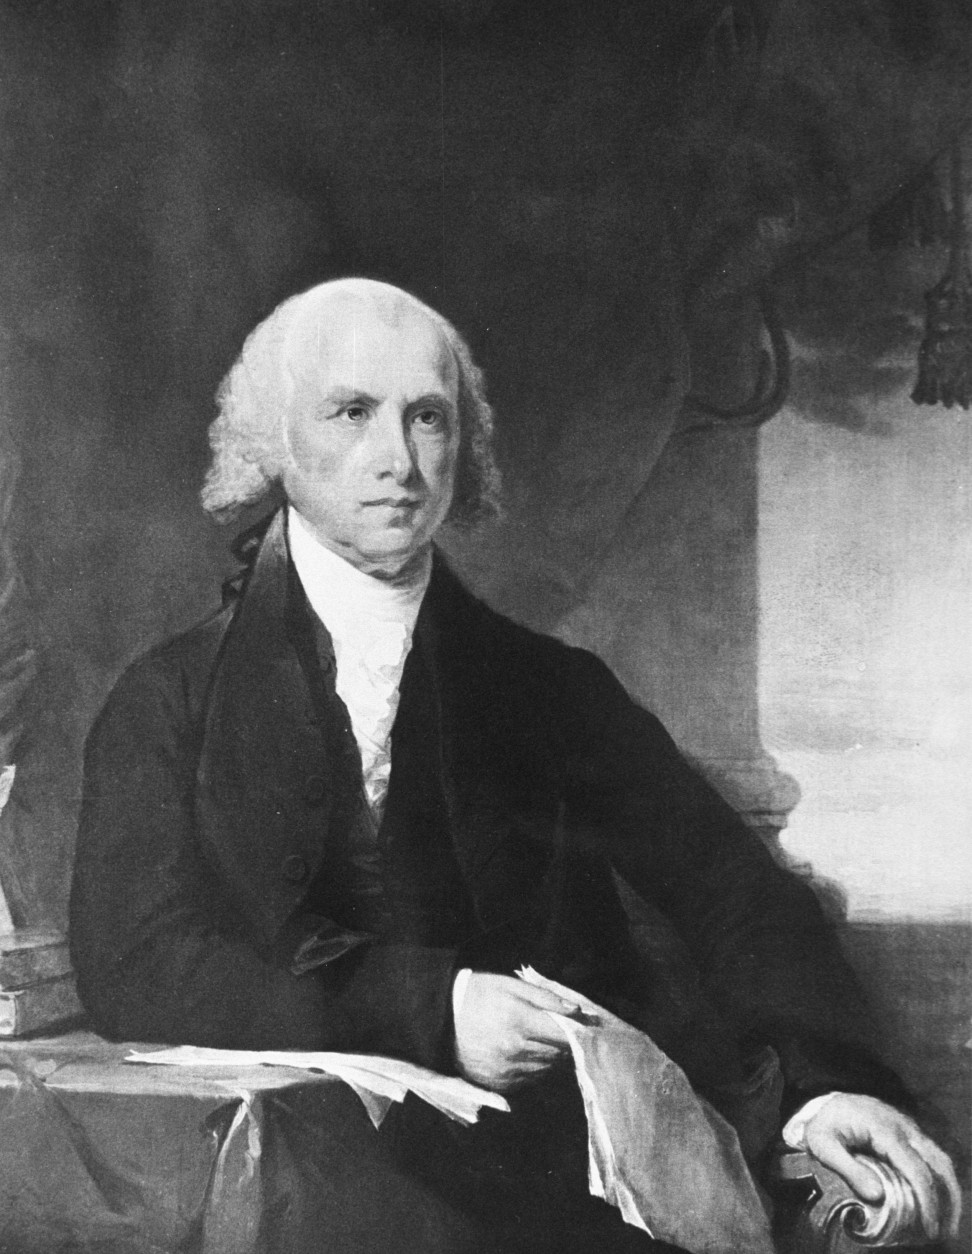 377869 04: Portrait of 4th United States President James Madison. (1809-1817) (Courtesy of the National Archives/Newsmakers)